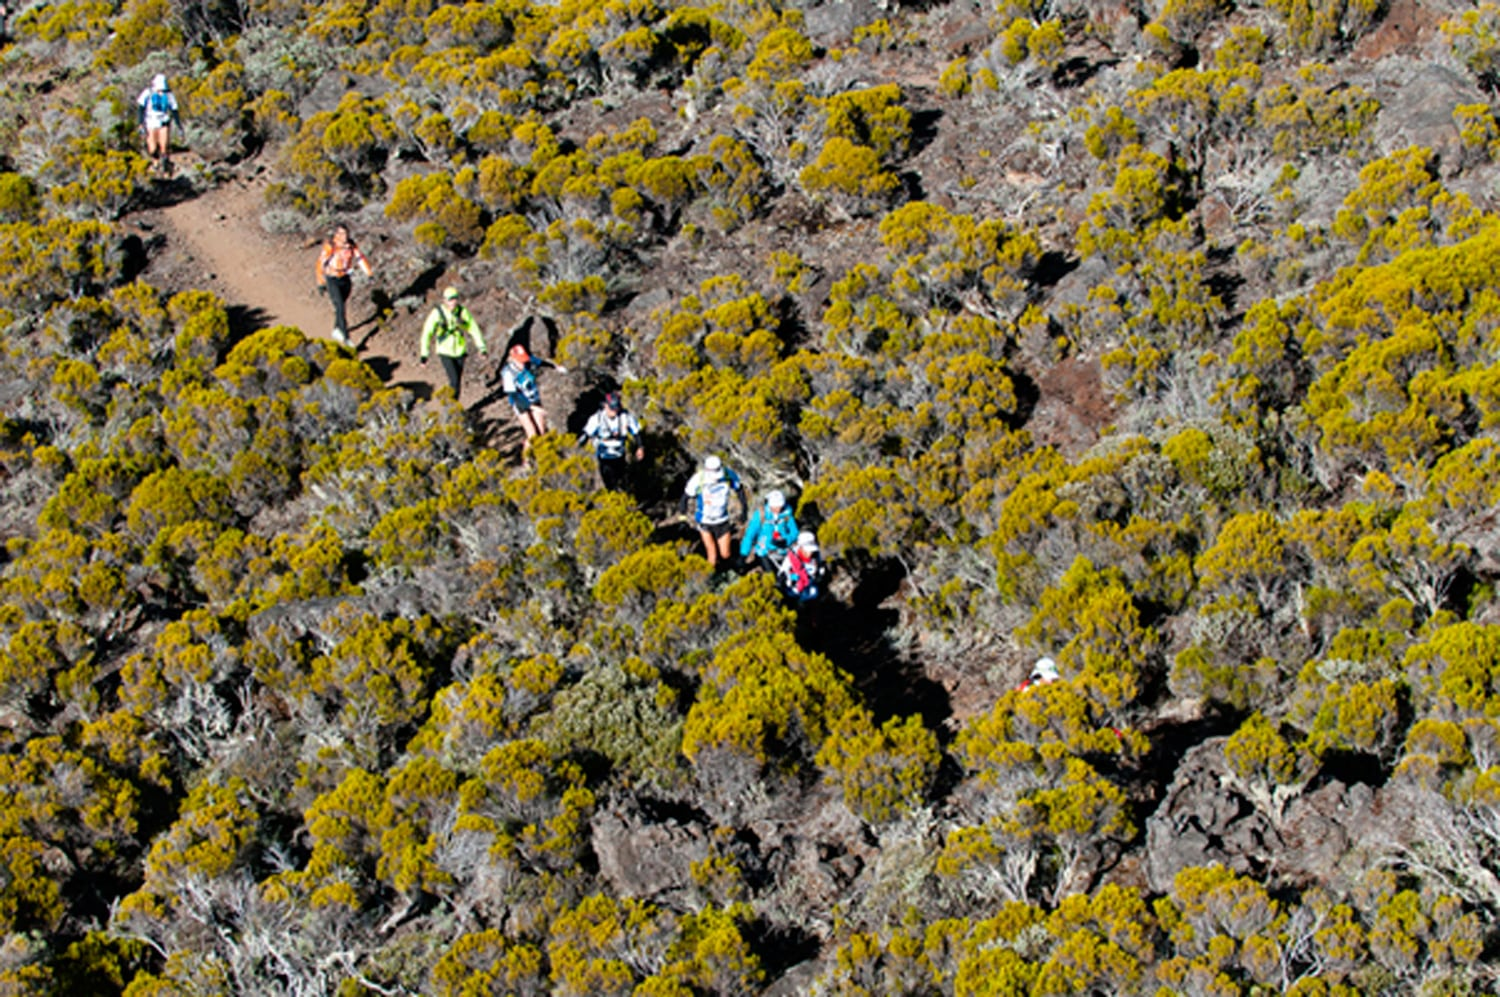 Reunion Island The Vanilla Islands Of The Indian Ocean The Grand Raid On